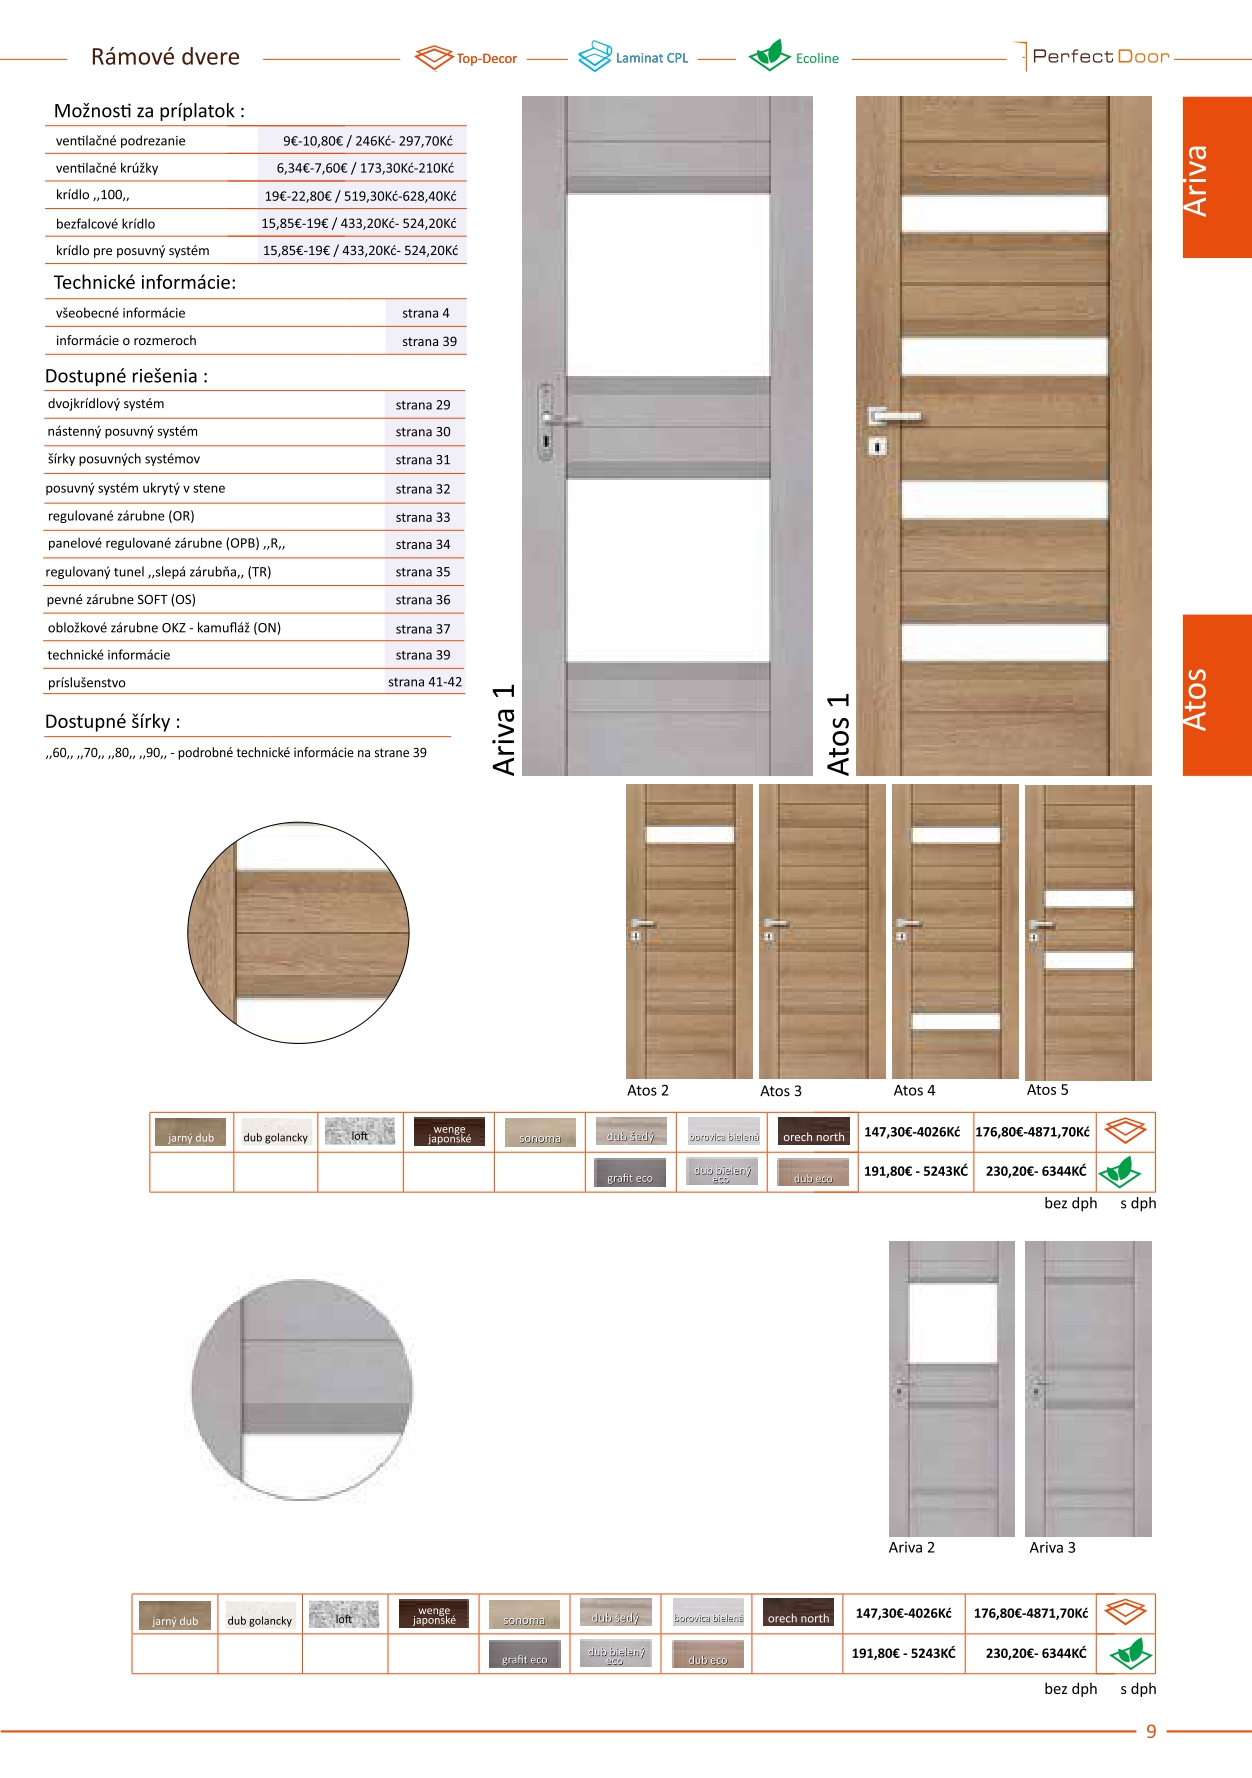 Perfectdoor katalog  1 2019 pages-to-jpg-0009